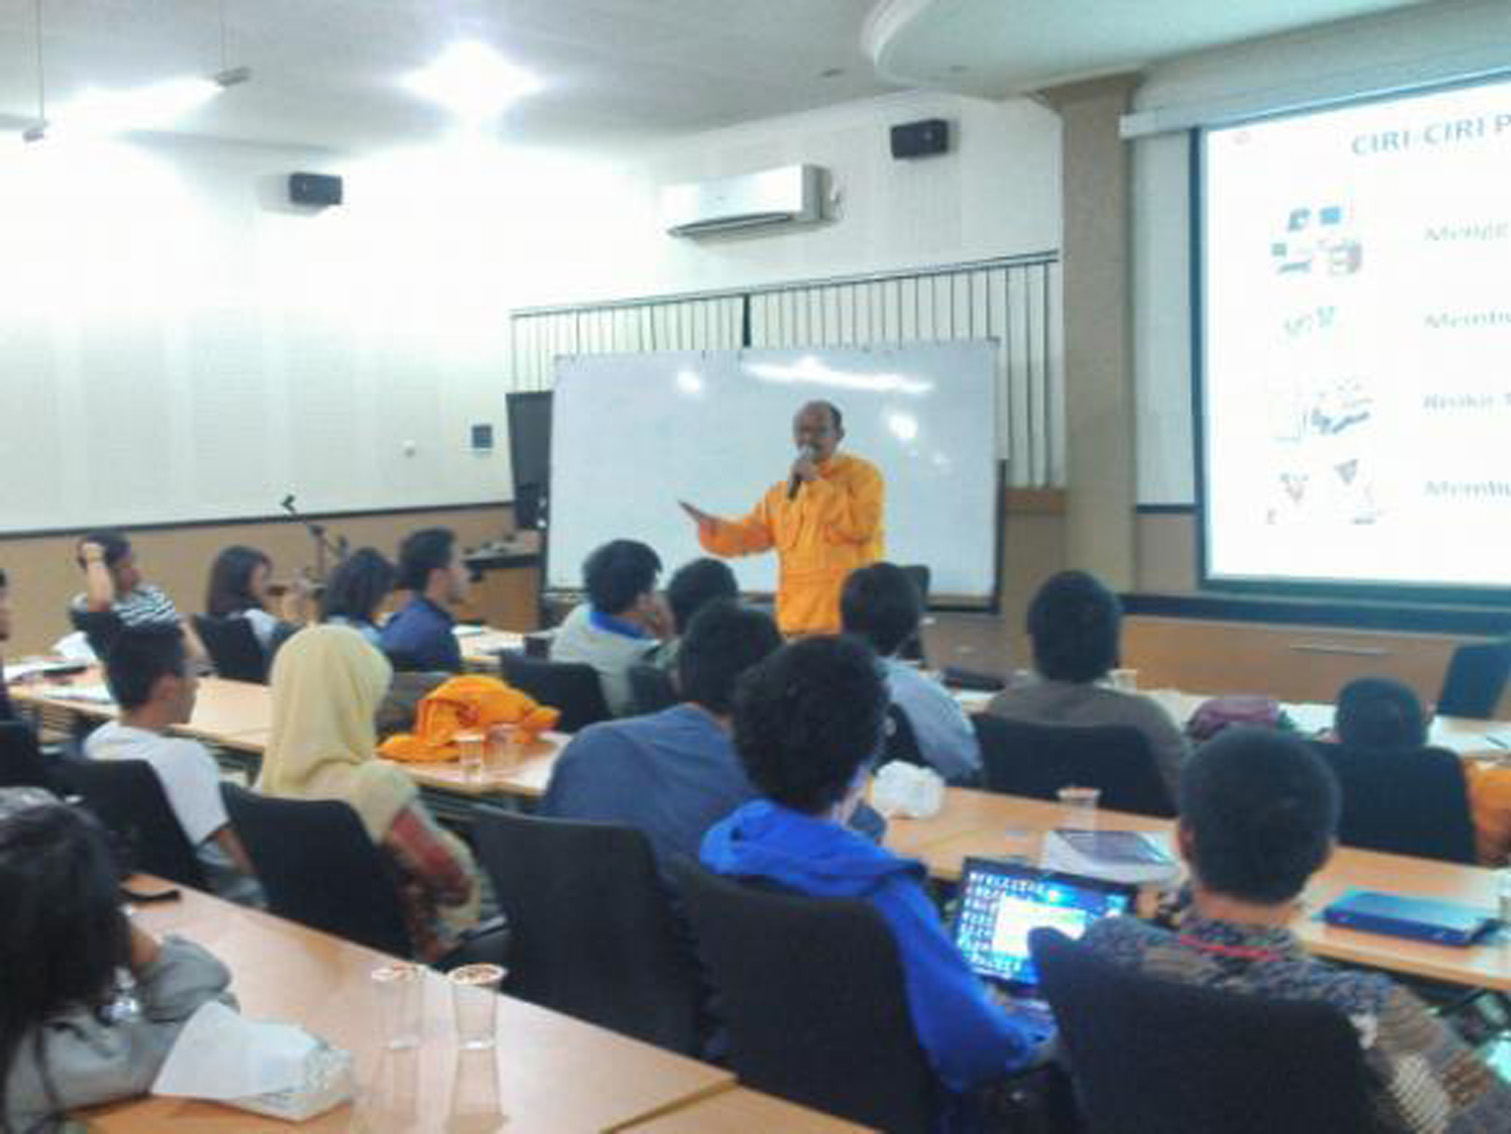 Mr. Elan Biantara, current Public Relation of SKK Migas, was giving lecture about oil and gas industry in HilmiPanigoro Room.